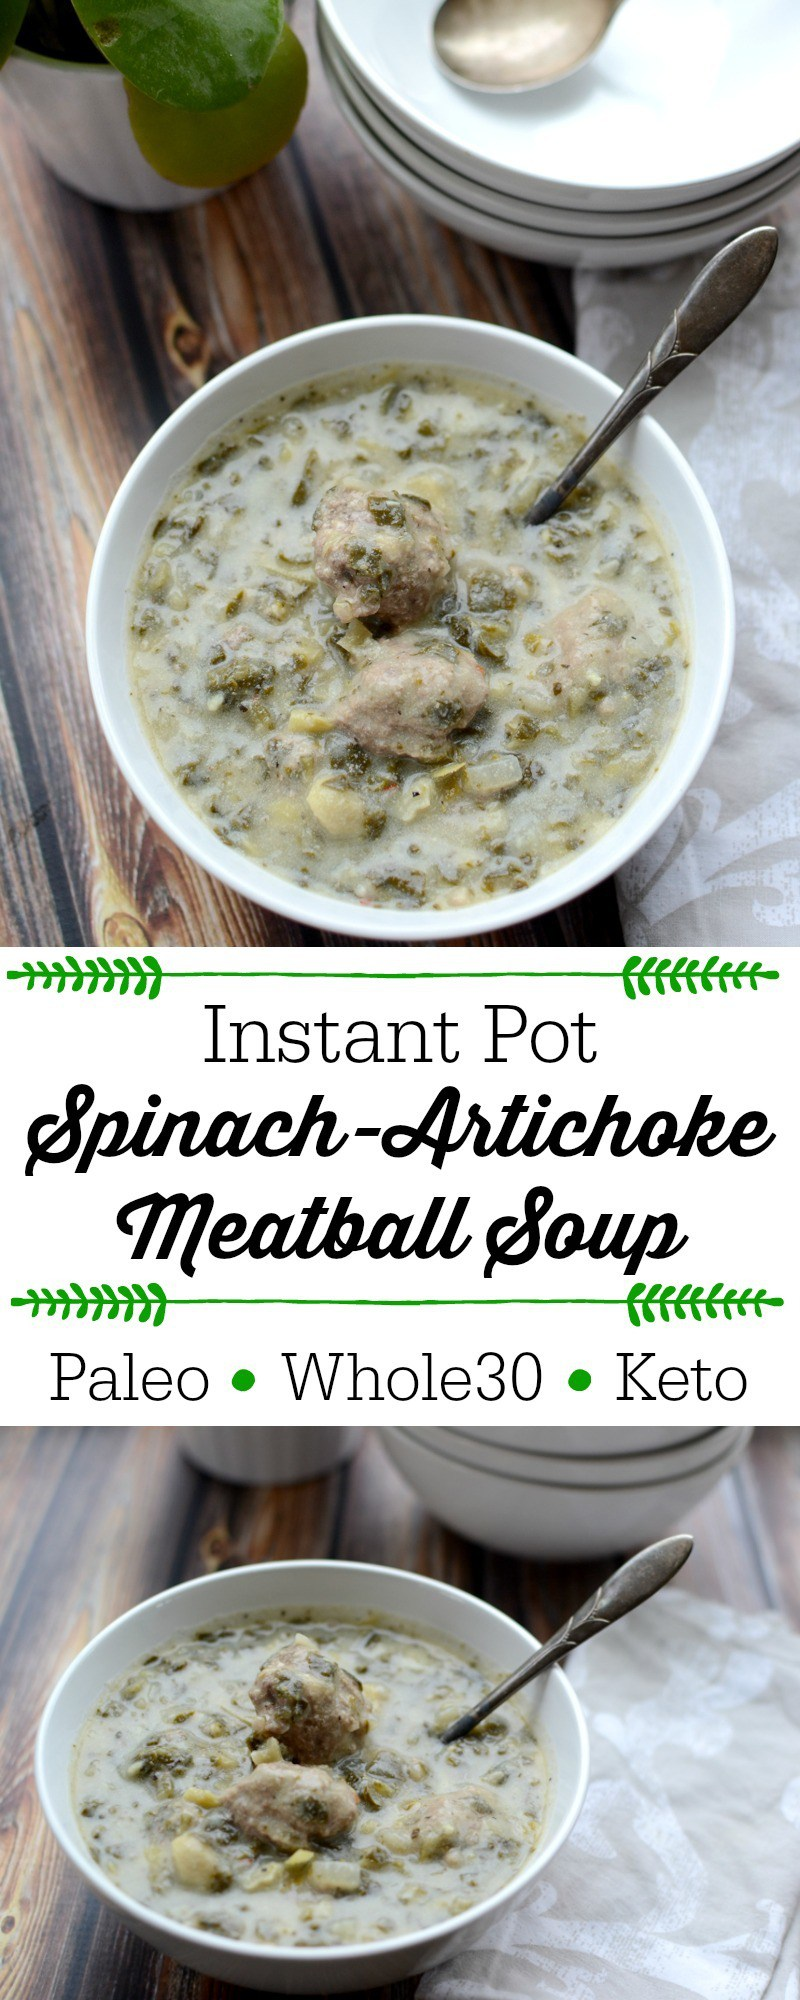 instant pot spinach-artichoke meatball soup with text overlay